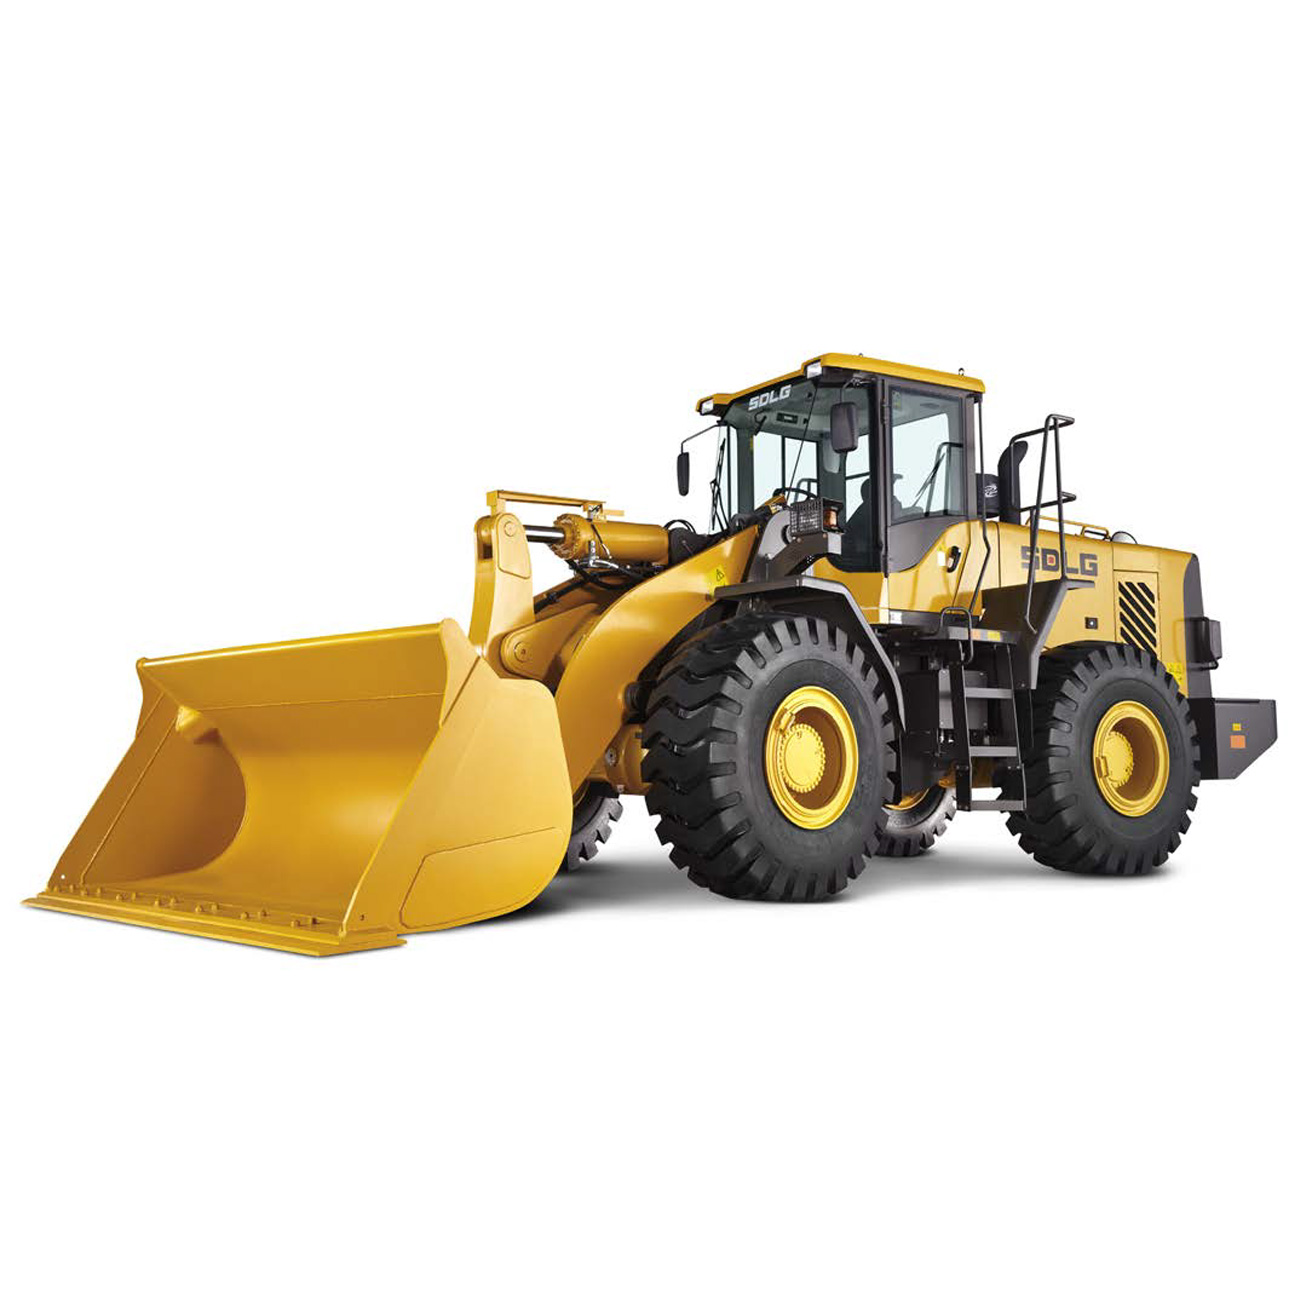 L959F Wheel Loader | Front End Loader - SDLG North America